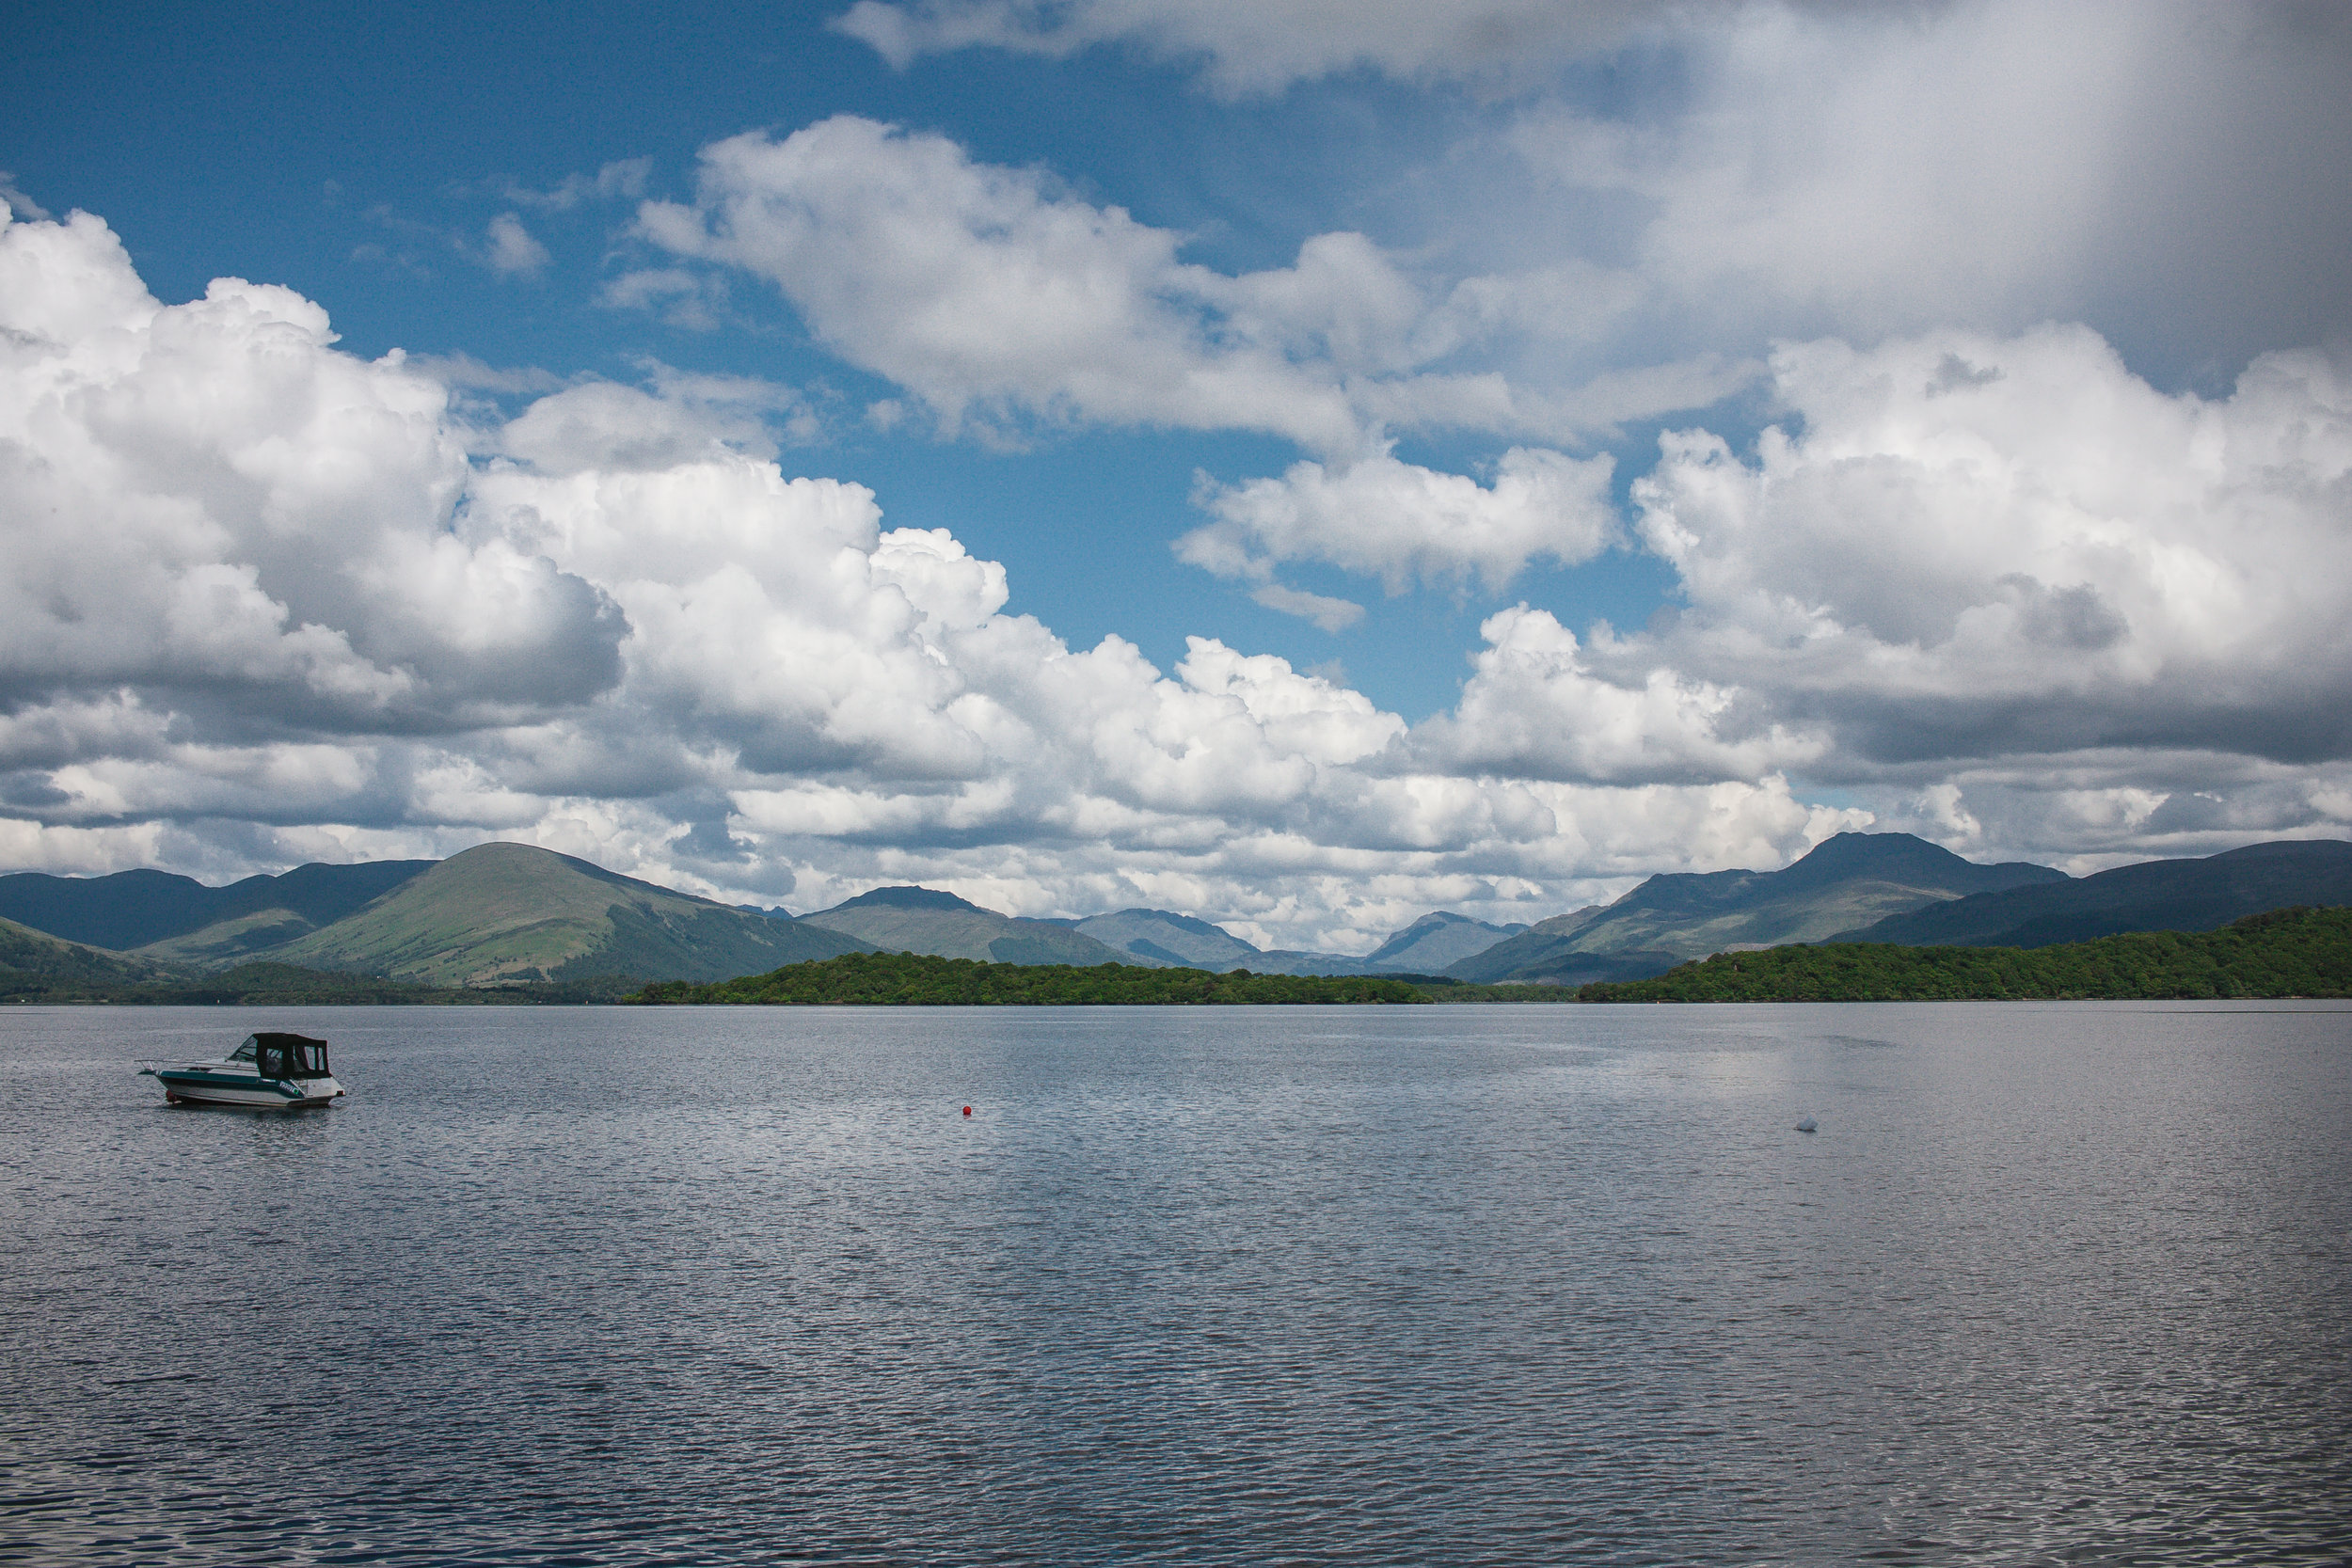 Looking across Loch Lomond with Luss to the left of the picture and the massive Ben Lomond to the right.